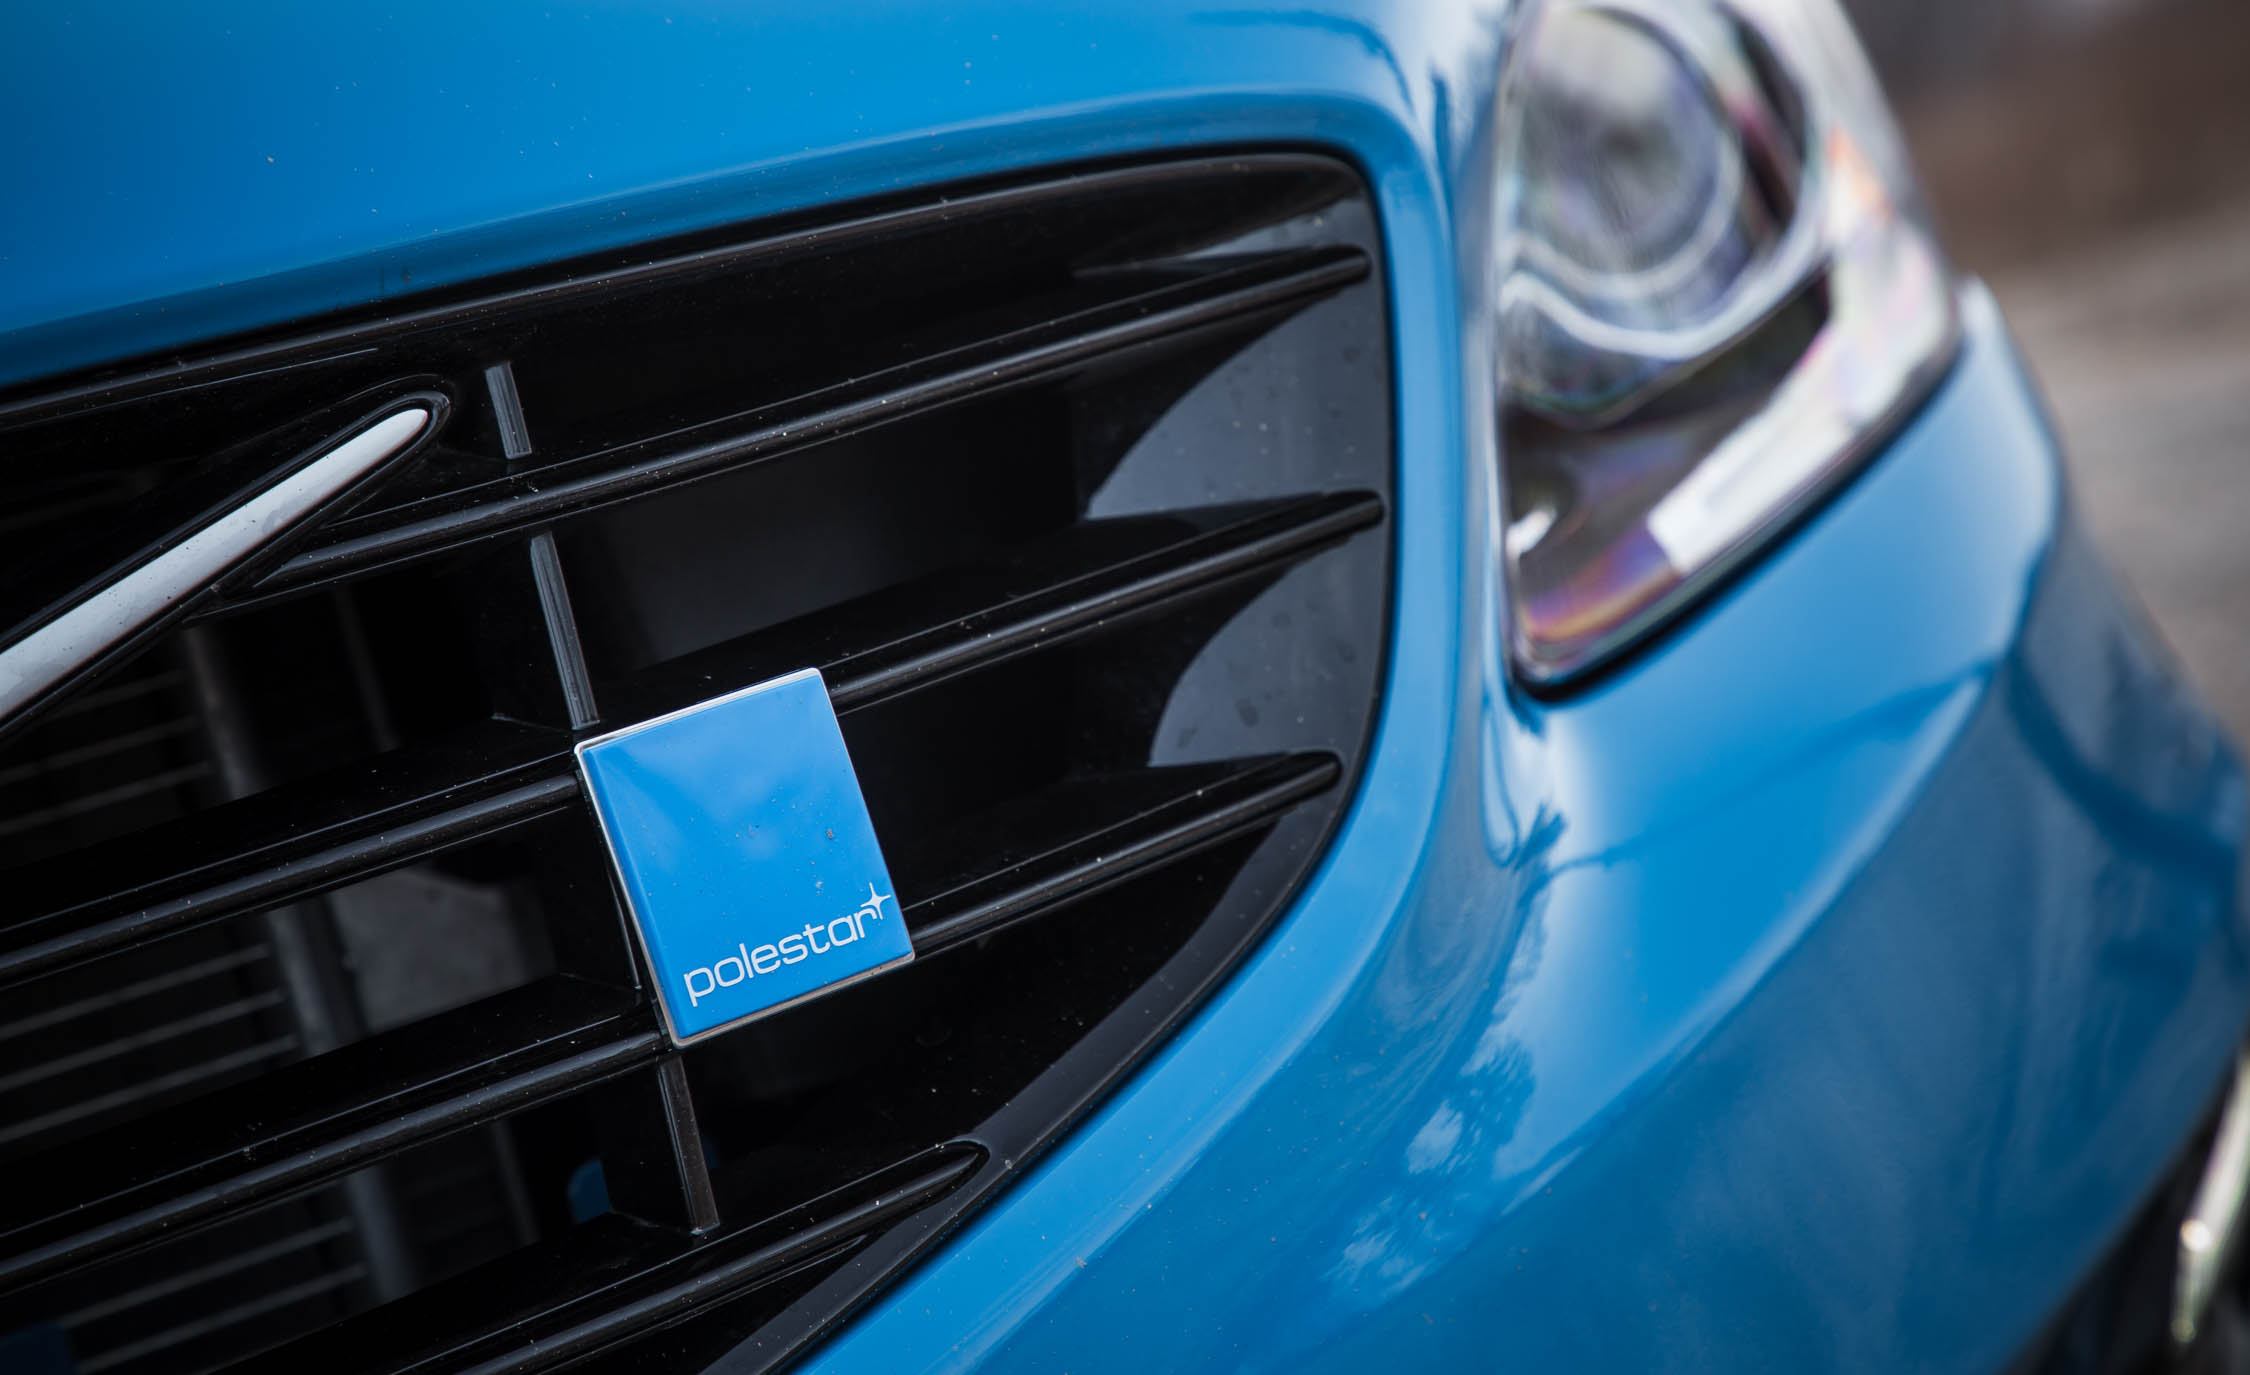 2017 Volvo V60 Polestar Exterior View Grille And Badge (Photo 16 of 53)